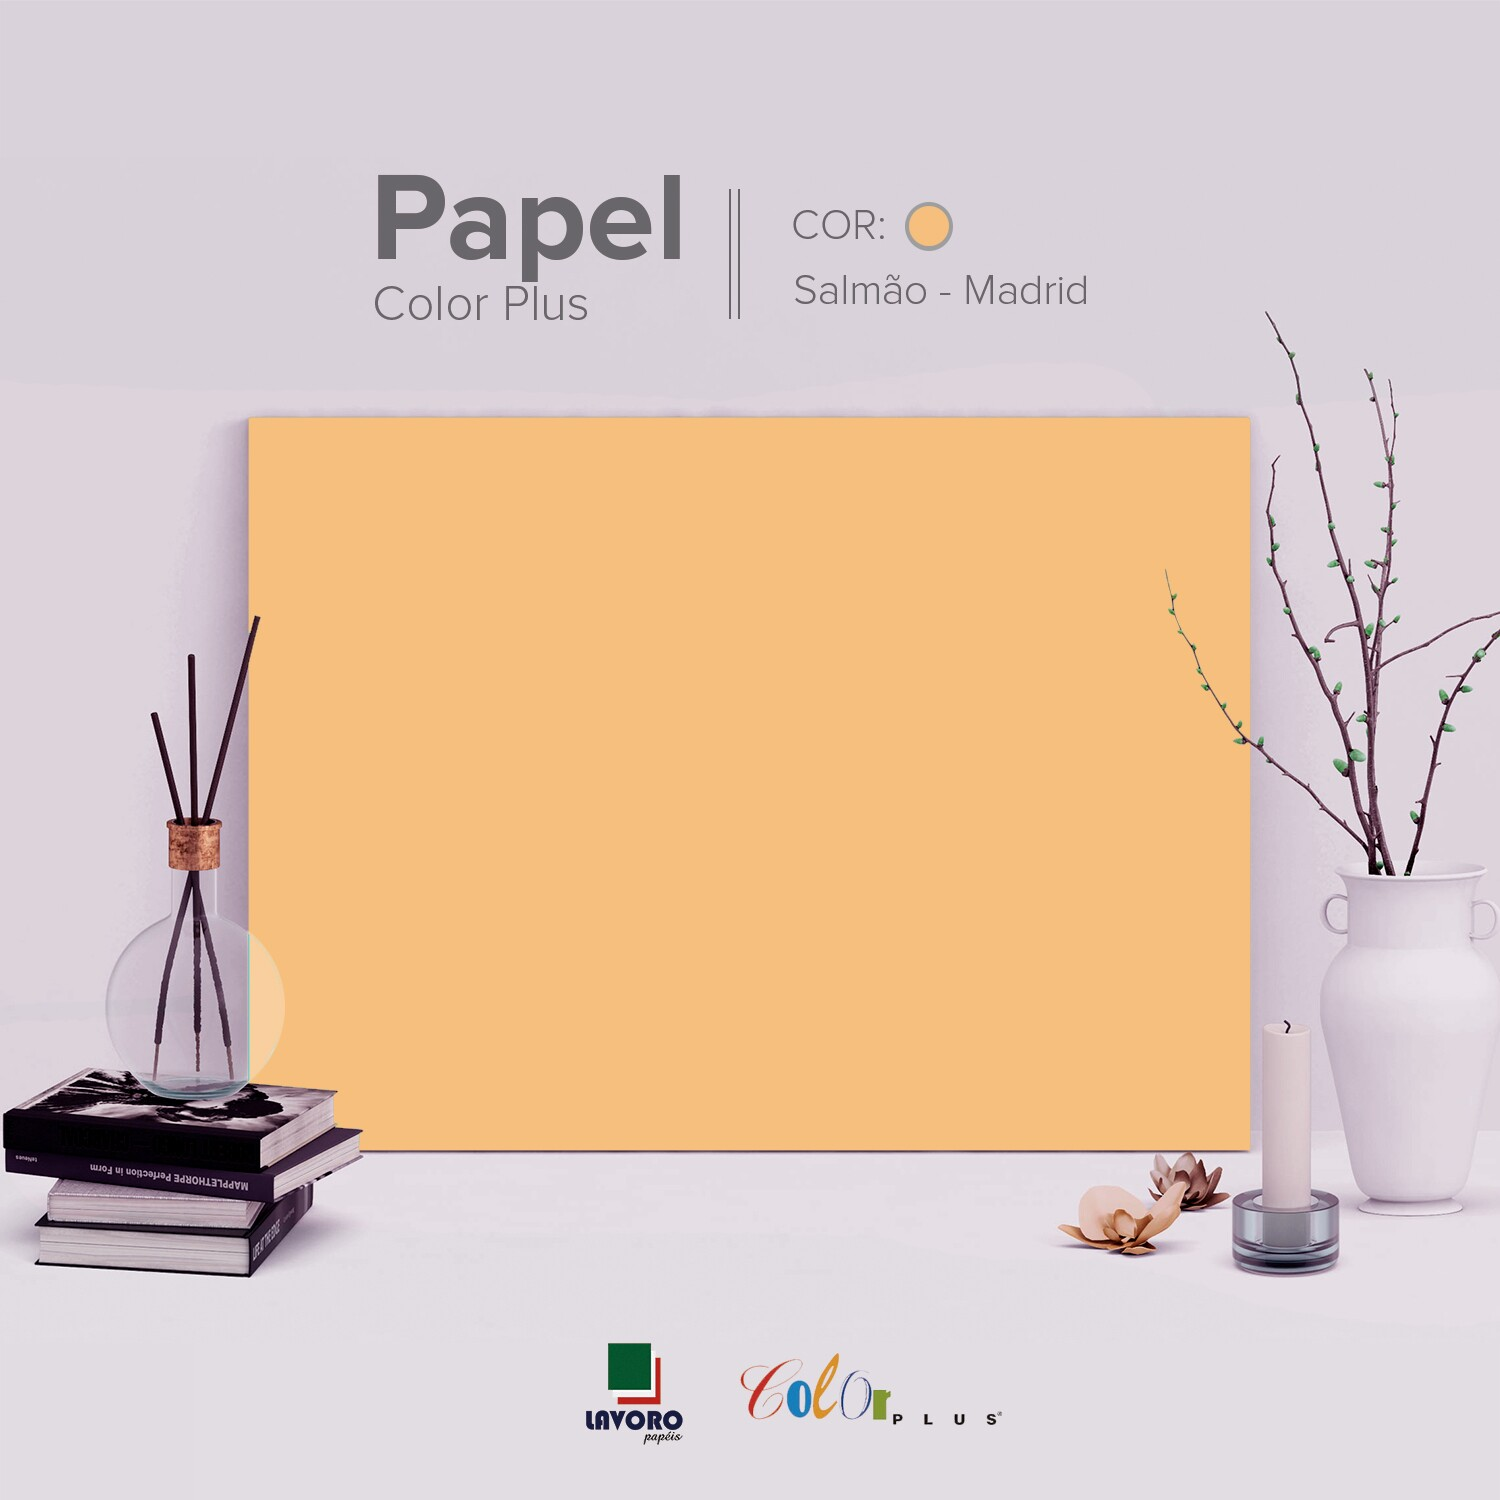 Papel Color Plus - Salmão (Madrid) - 180g A3 - 28 Folhas